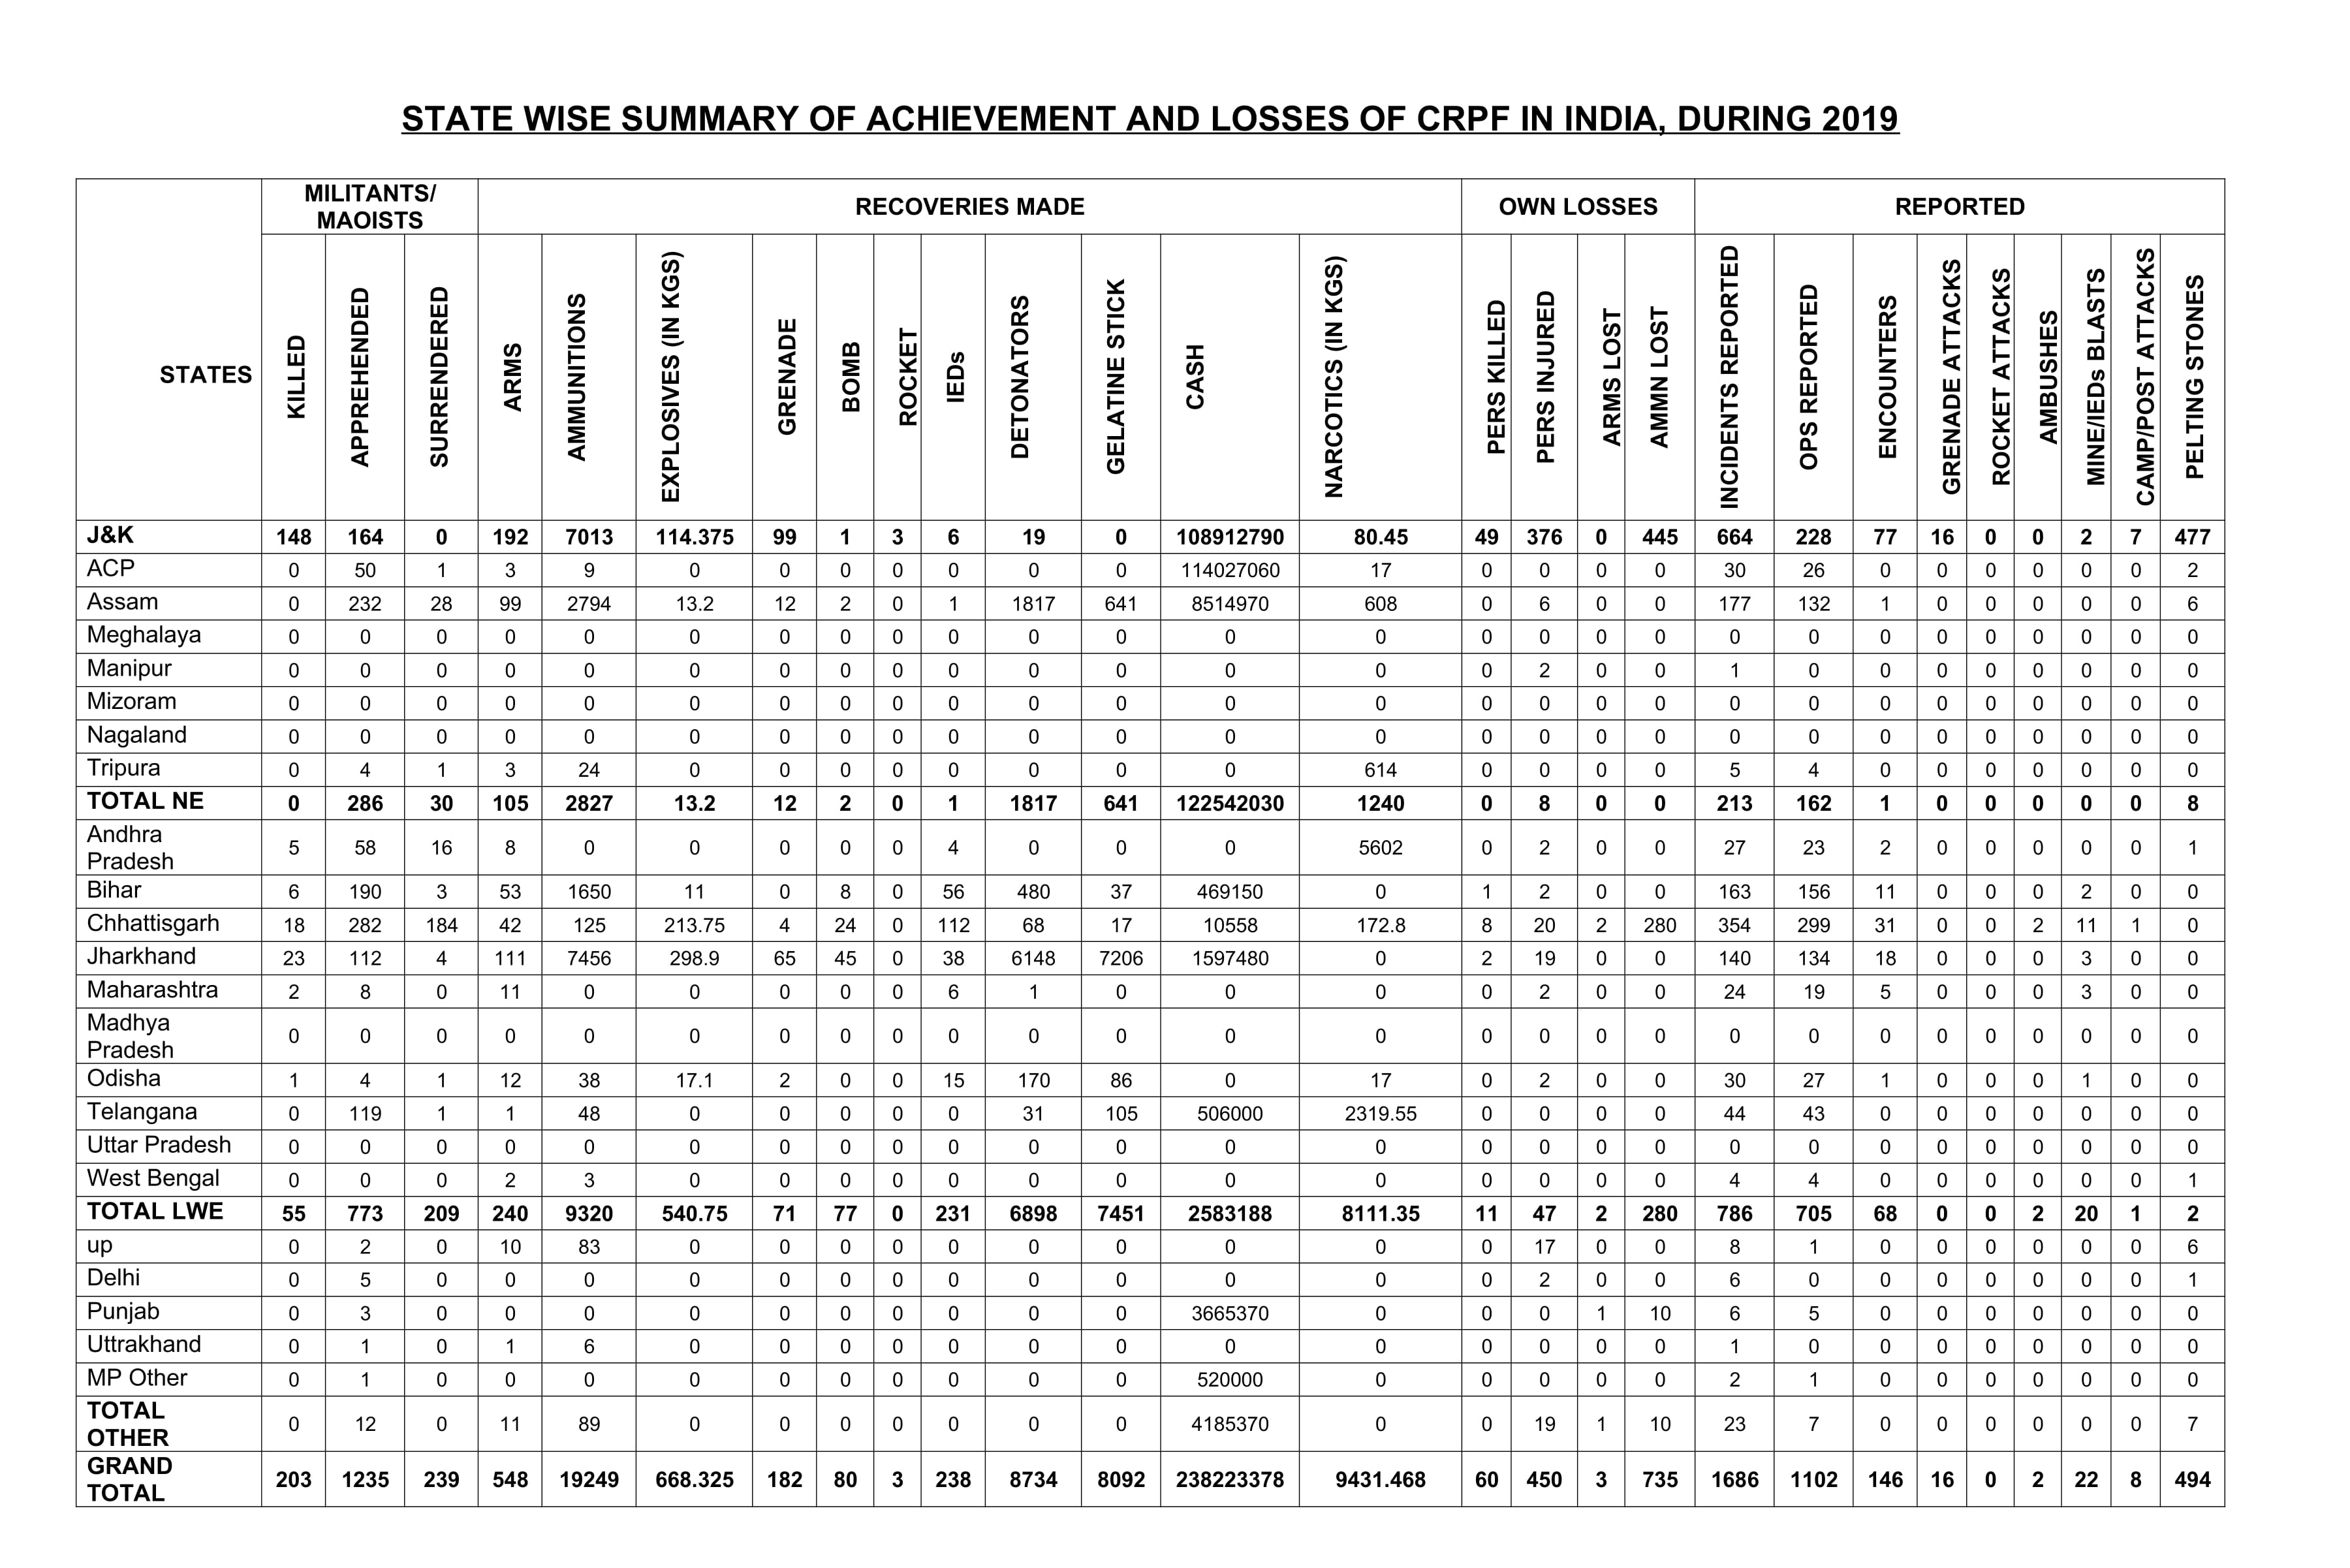 Stare wise Summary of Achievements of CRPF in 2019